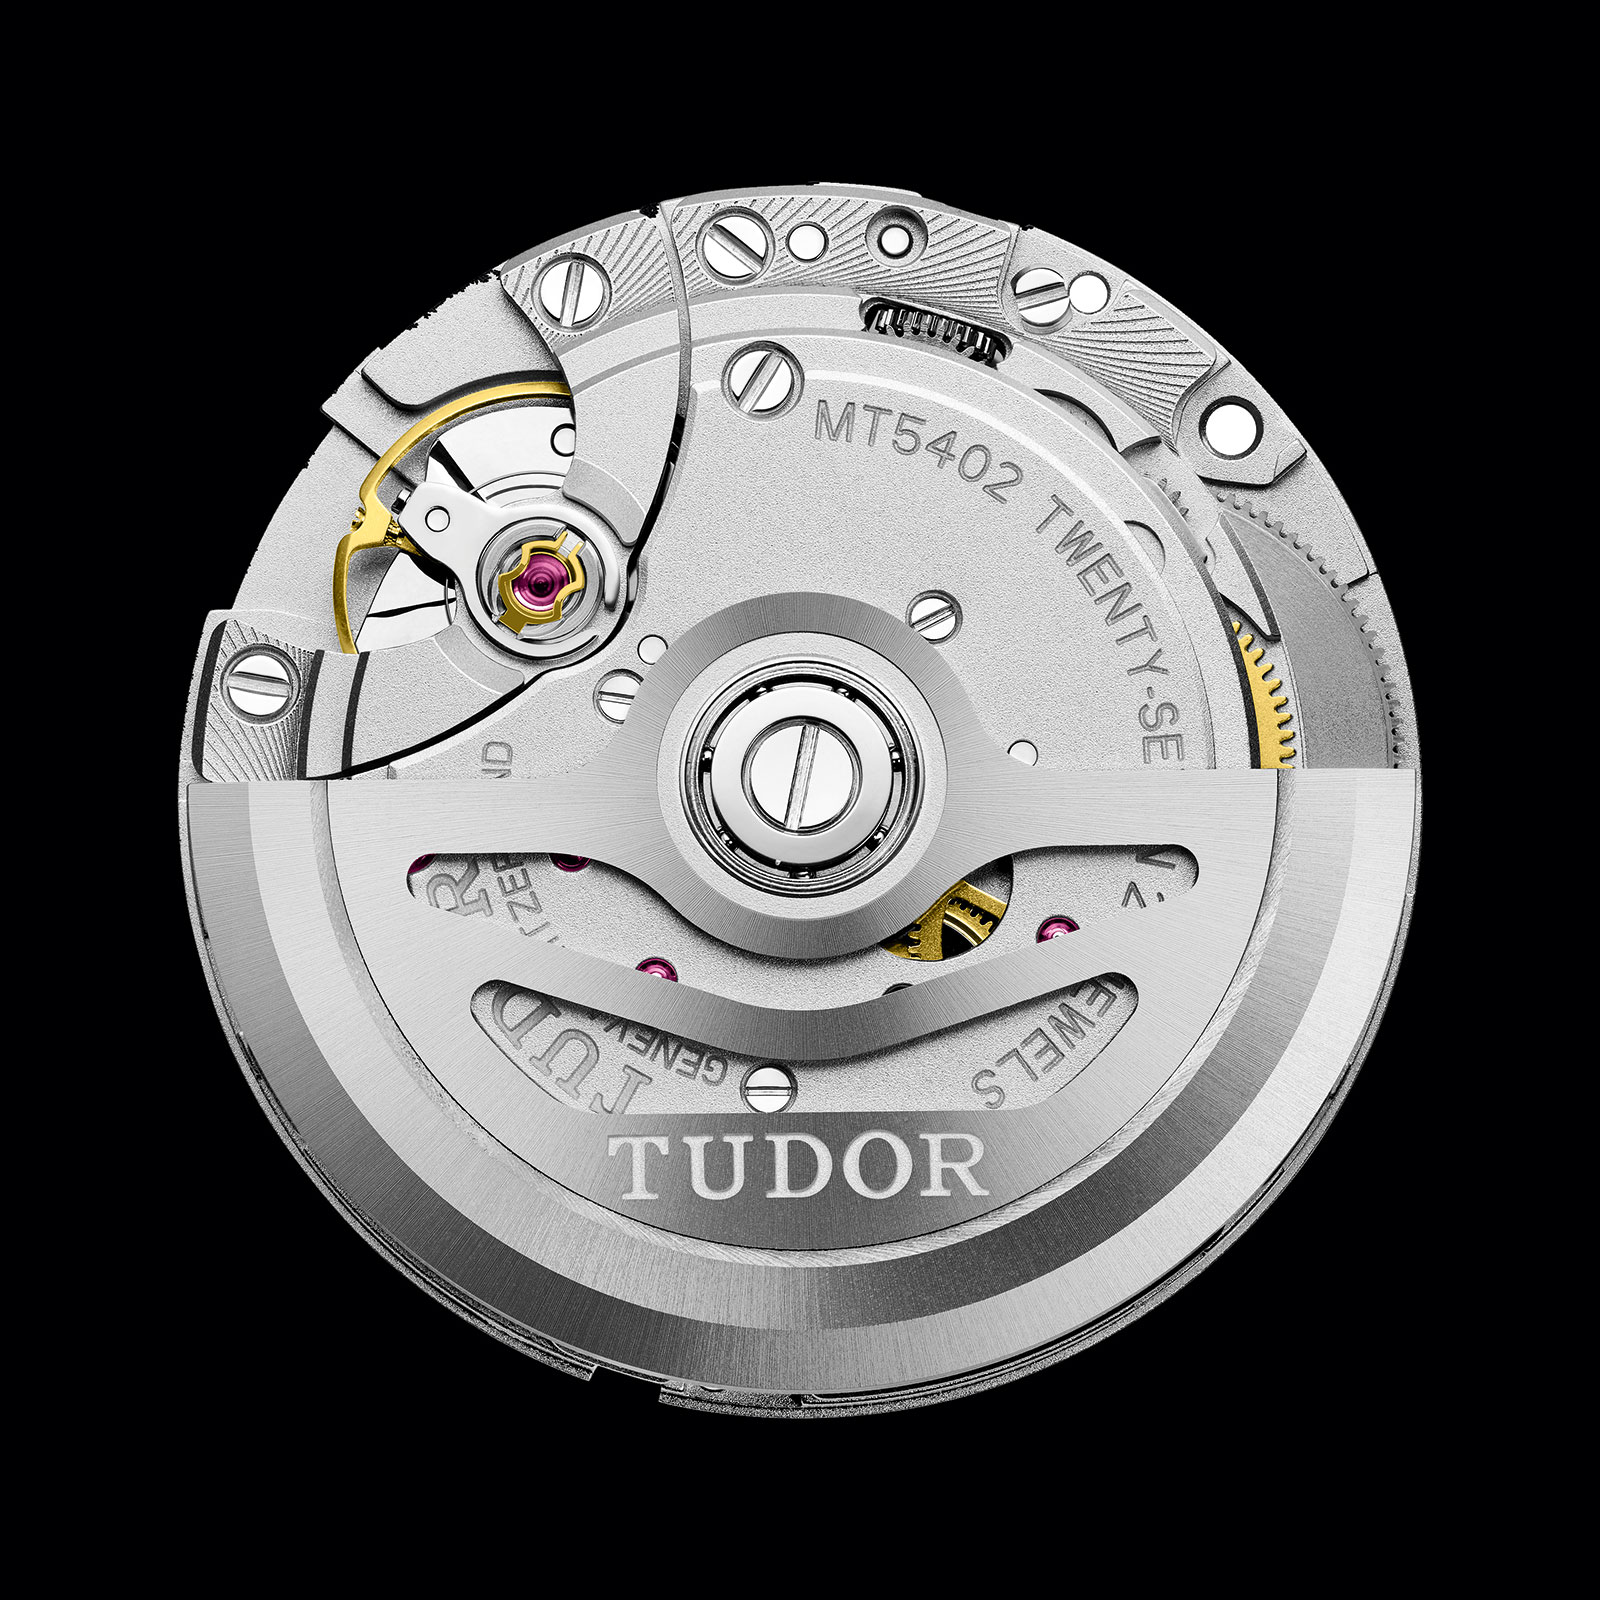 Tudor MT5402 movement